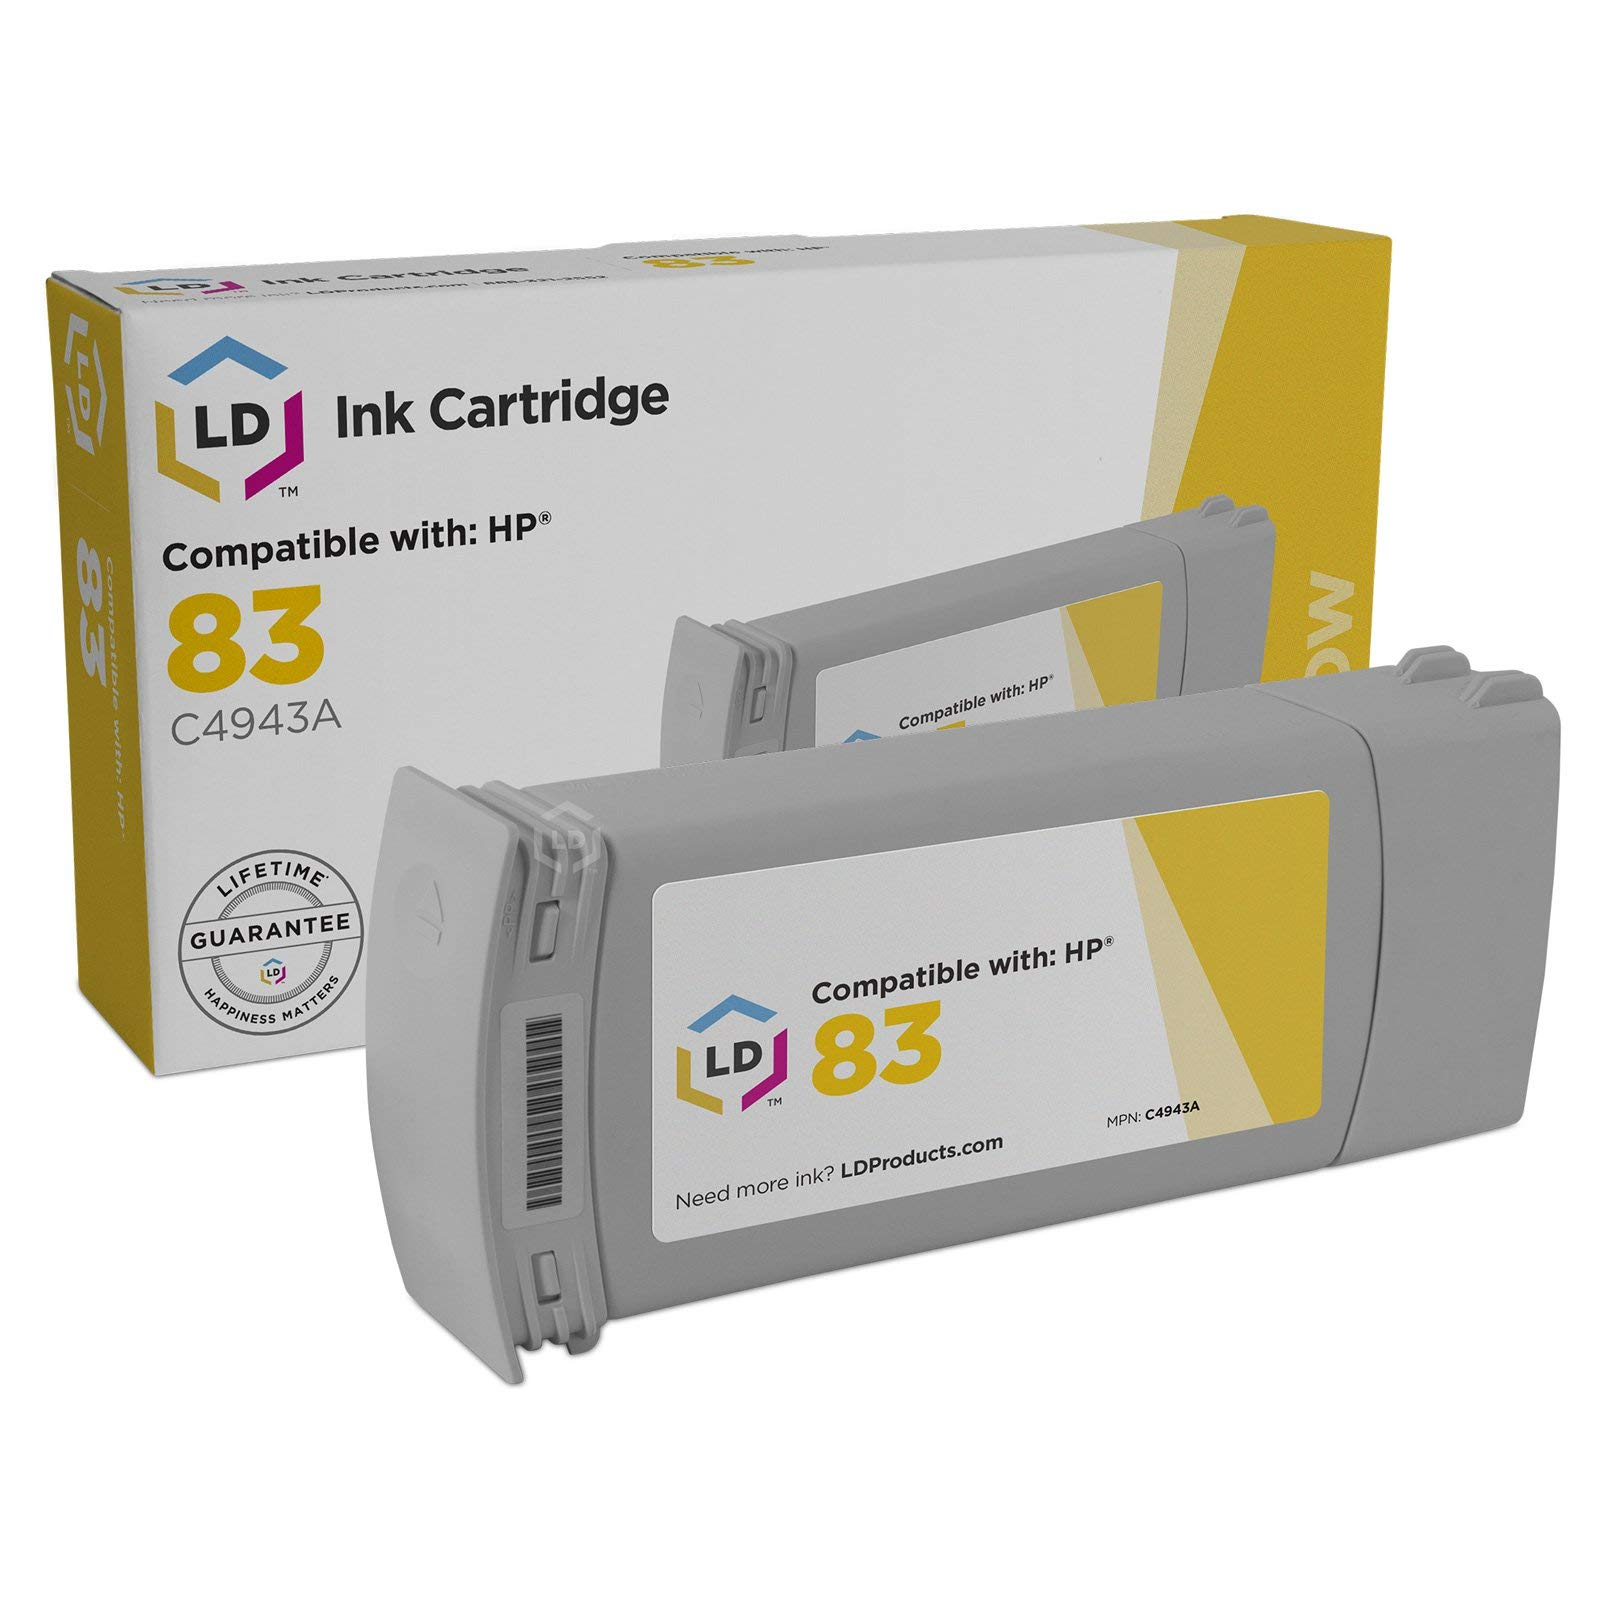 LD Remanufactured Ink Cartridge Replacement for HP 83 C4943A (Yellow)